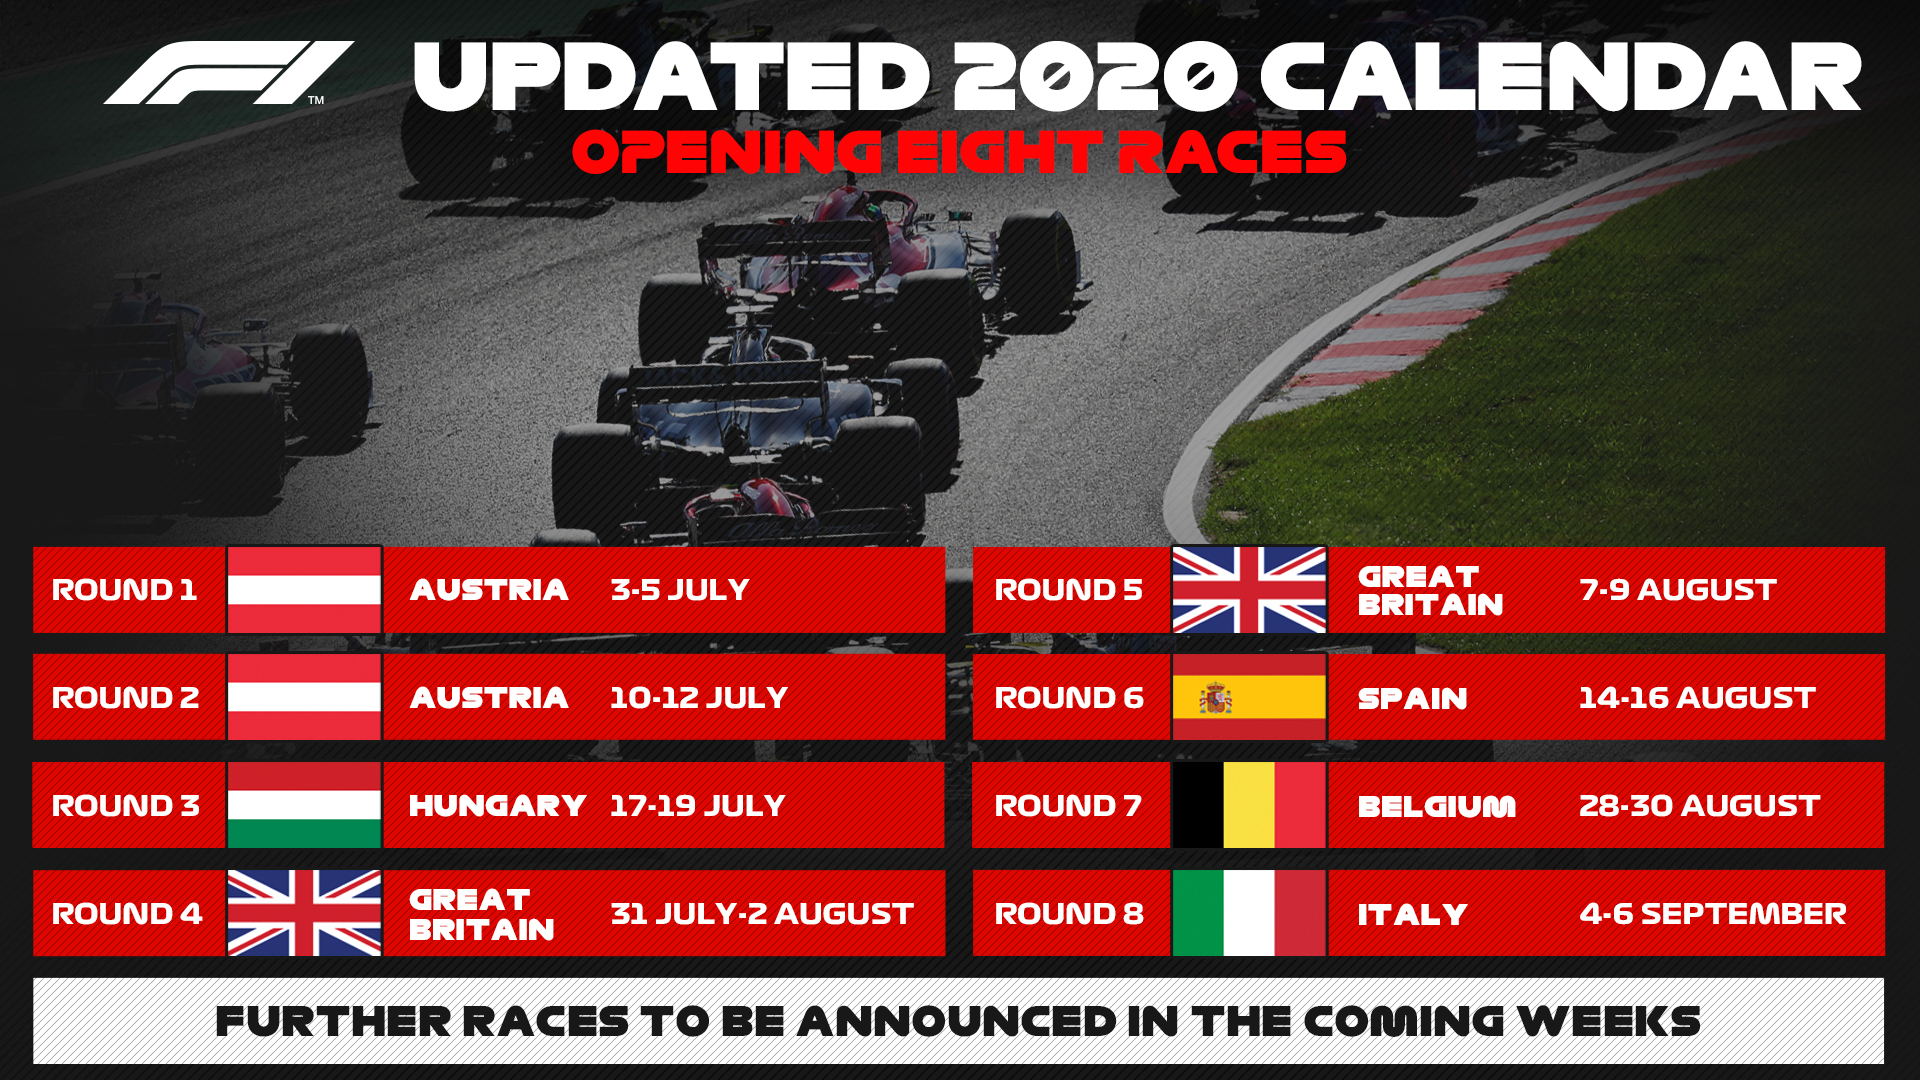 BREAKING: The opening 8 races of a revised 2020 calendar are now confirmed   All 8 are currently set to be closed events, operating under the strongest safety procedures   Further races will be announced in the coming weeks https://t.co/vQioKOAkQo